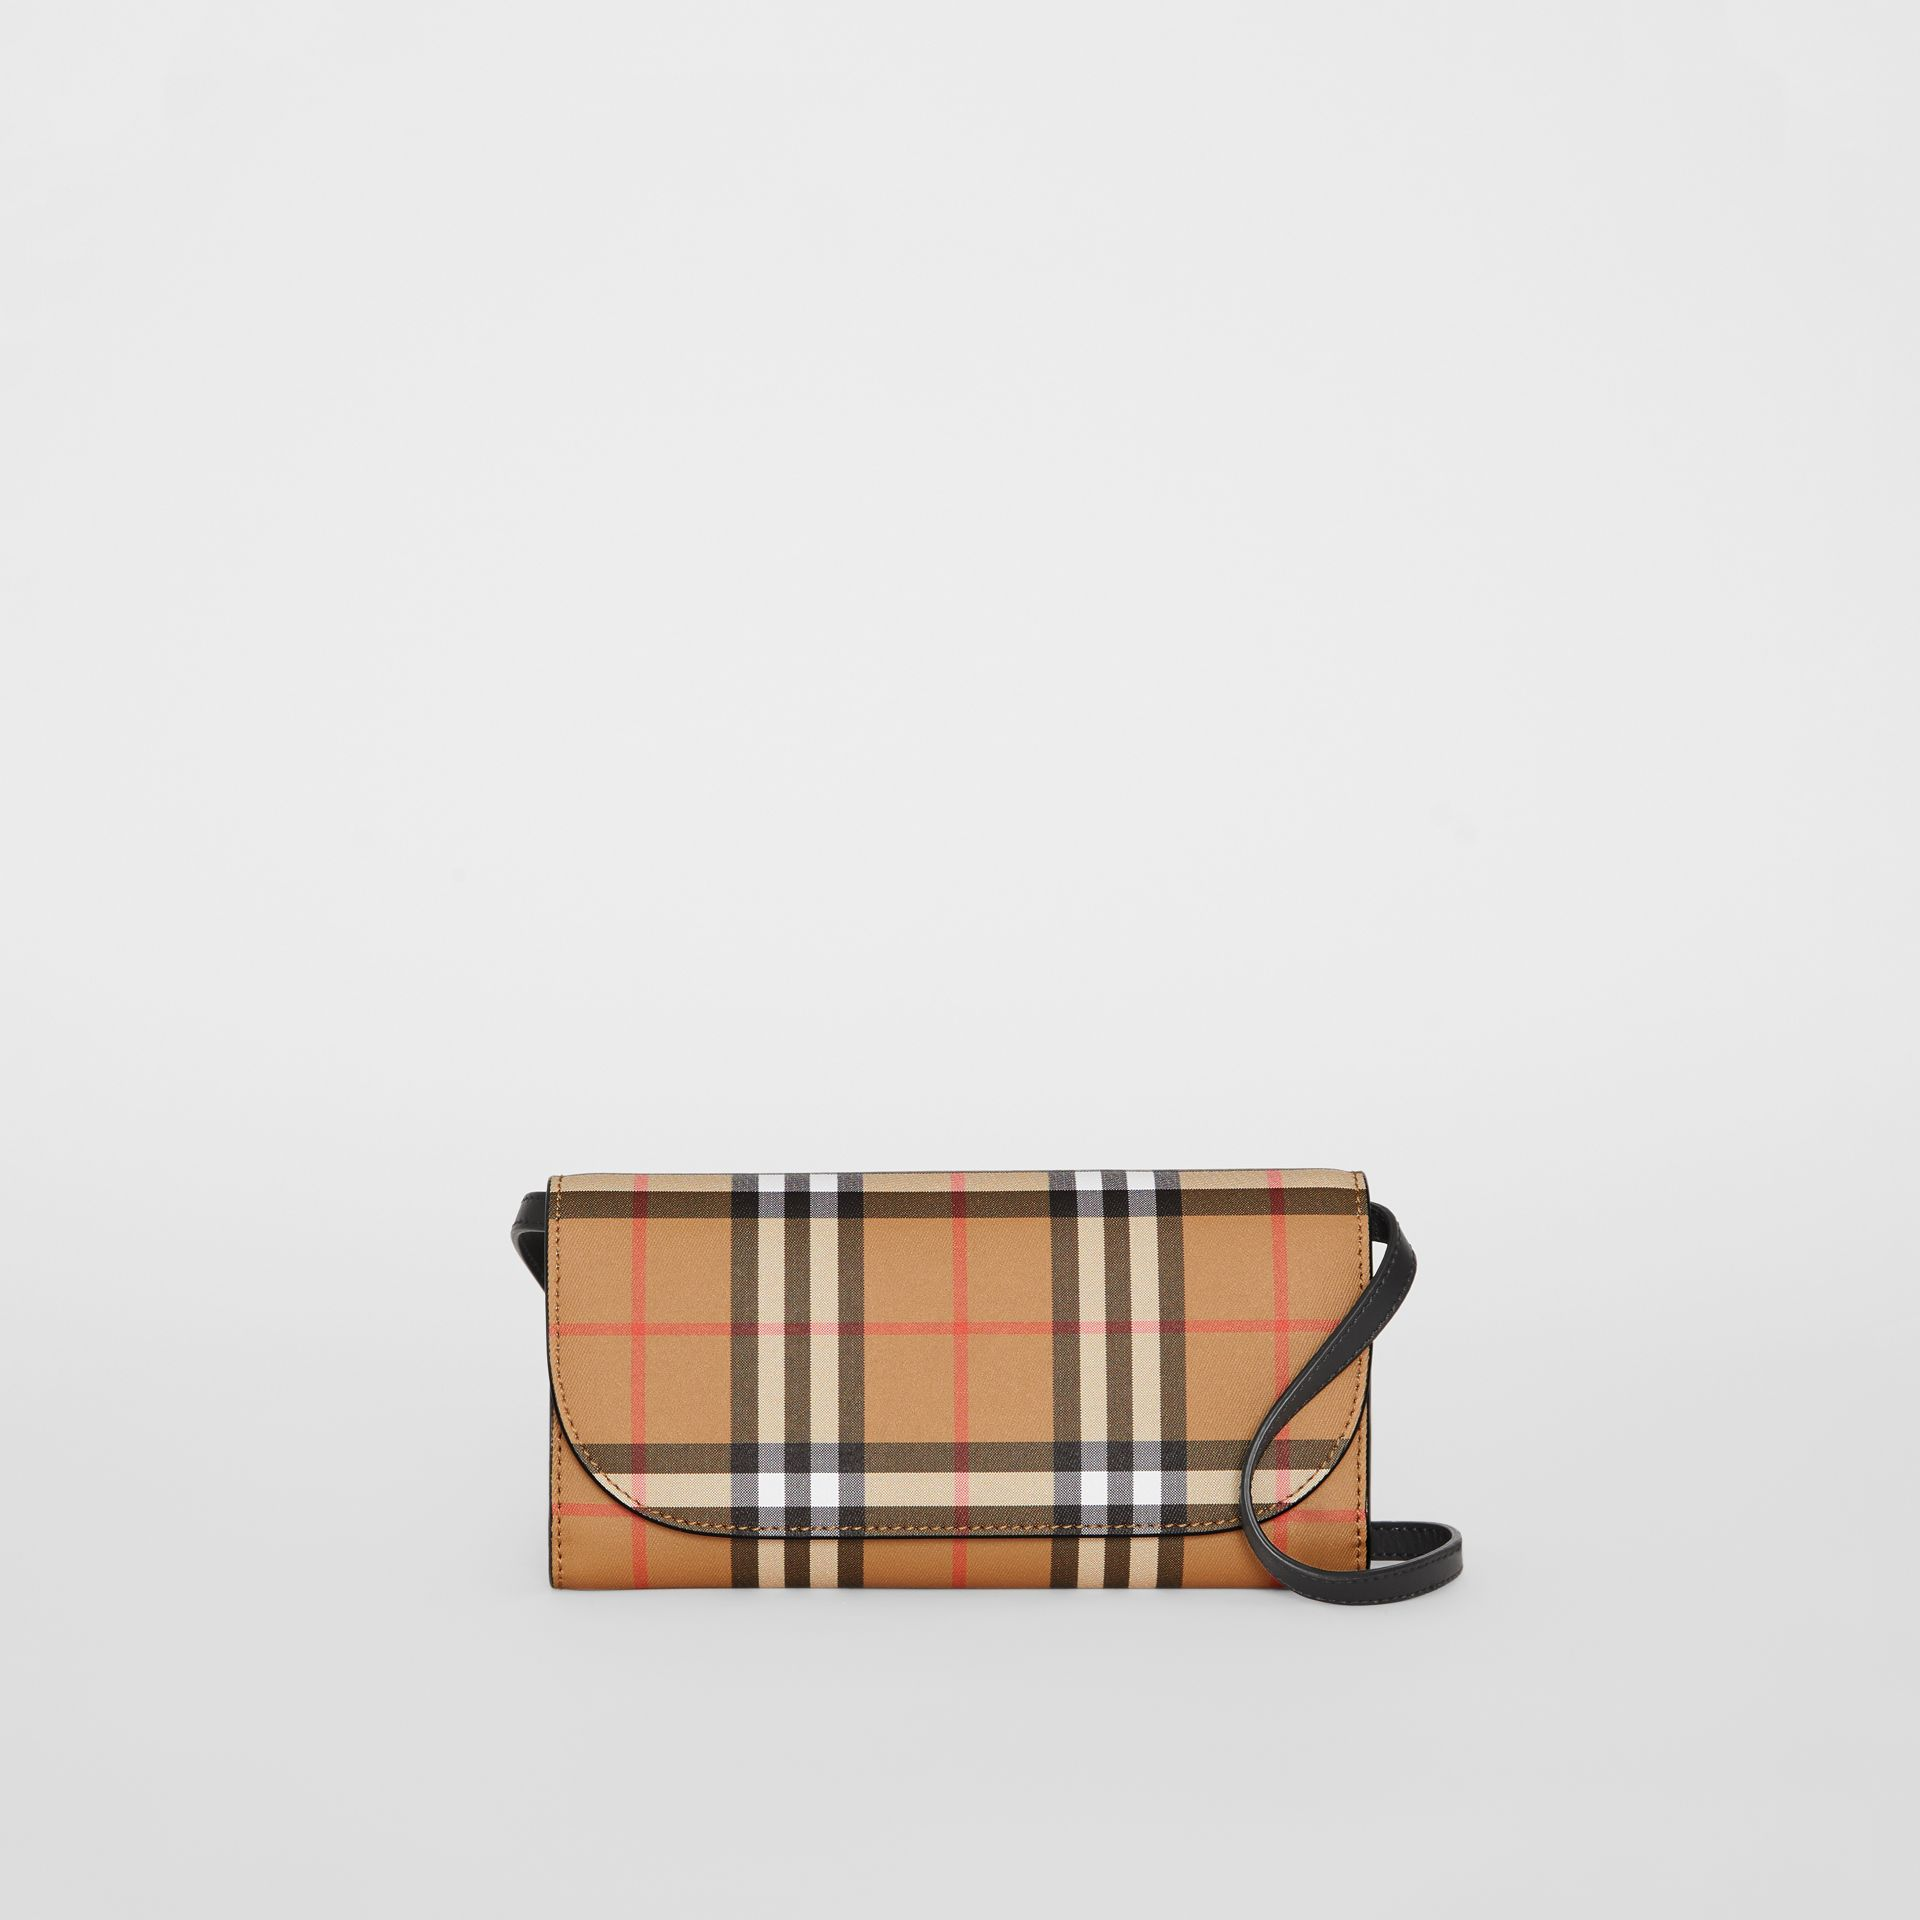 Portefeuille en cuir à motif Vintage check avec sangle amovible (Noir) - Femme | Burberry Canada - photo de la galerie 0